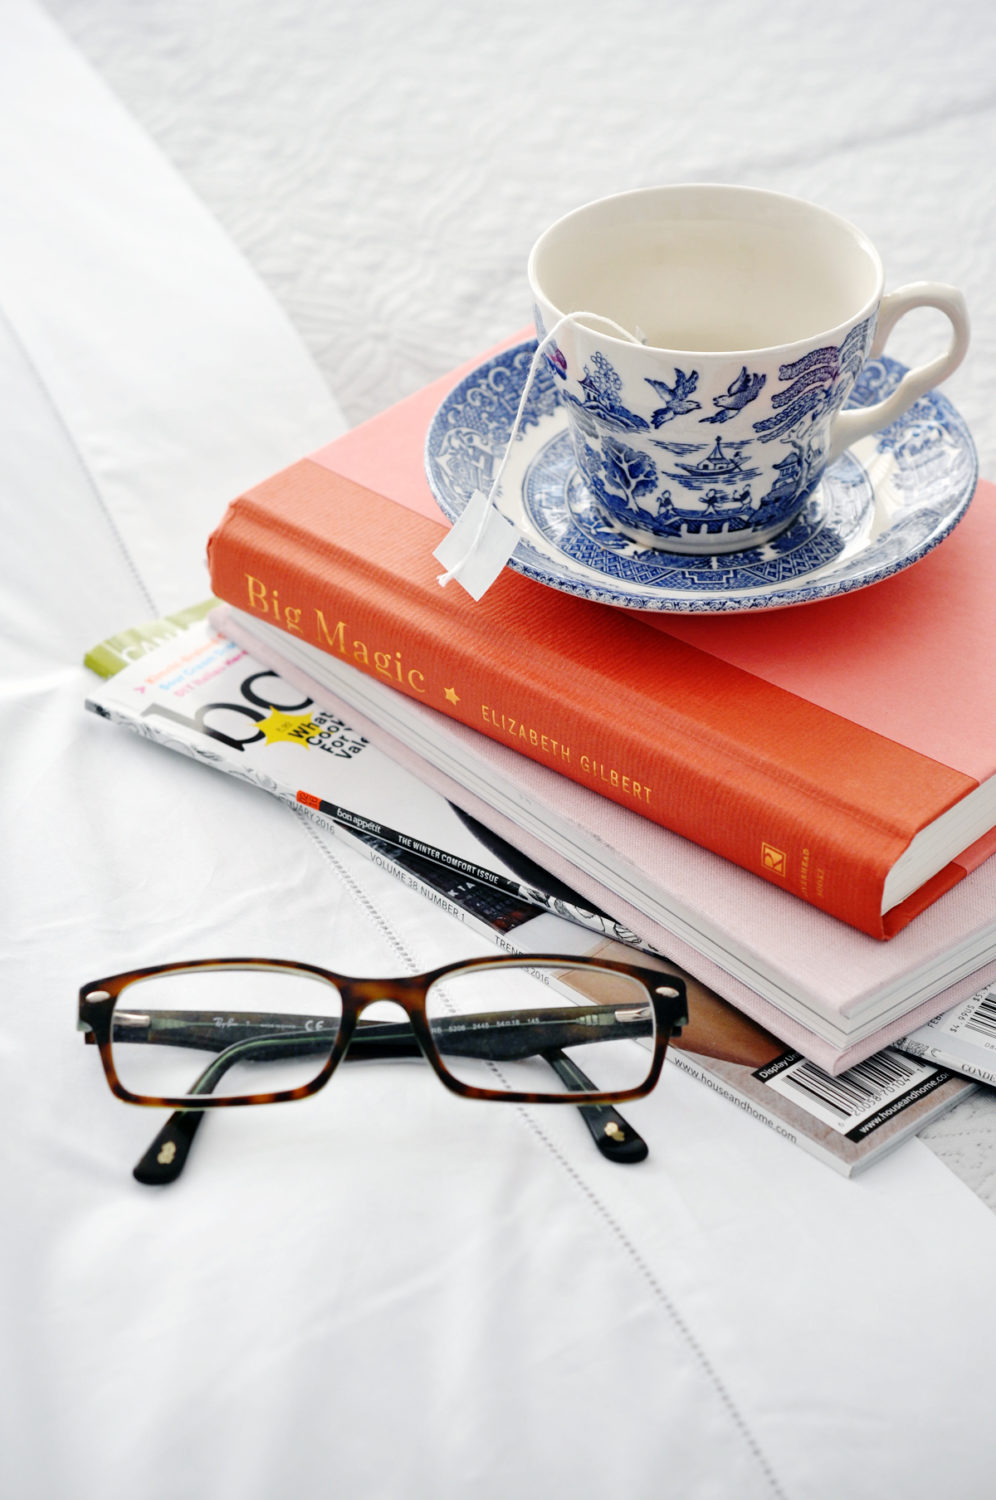 Tea, books, glasses.